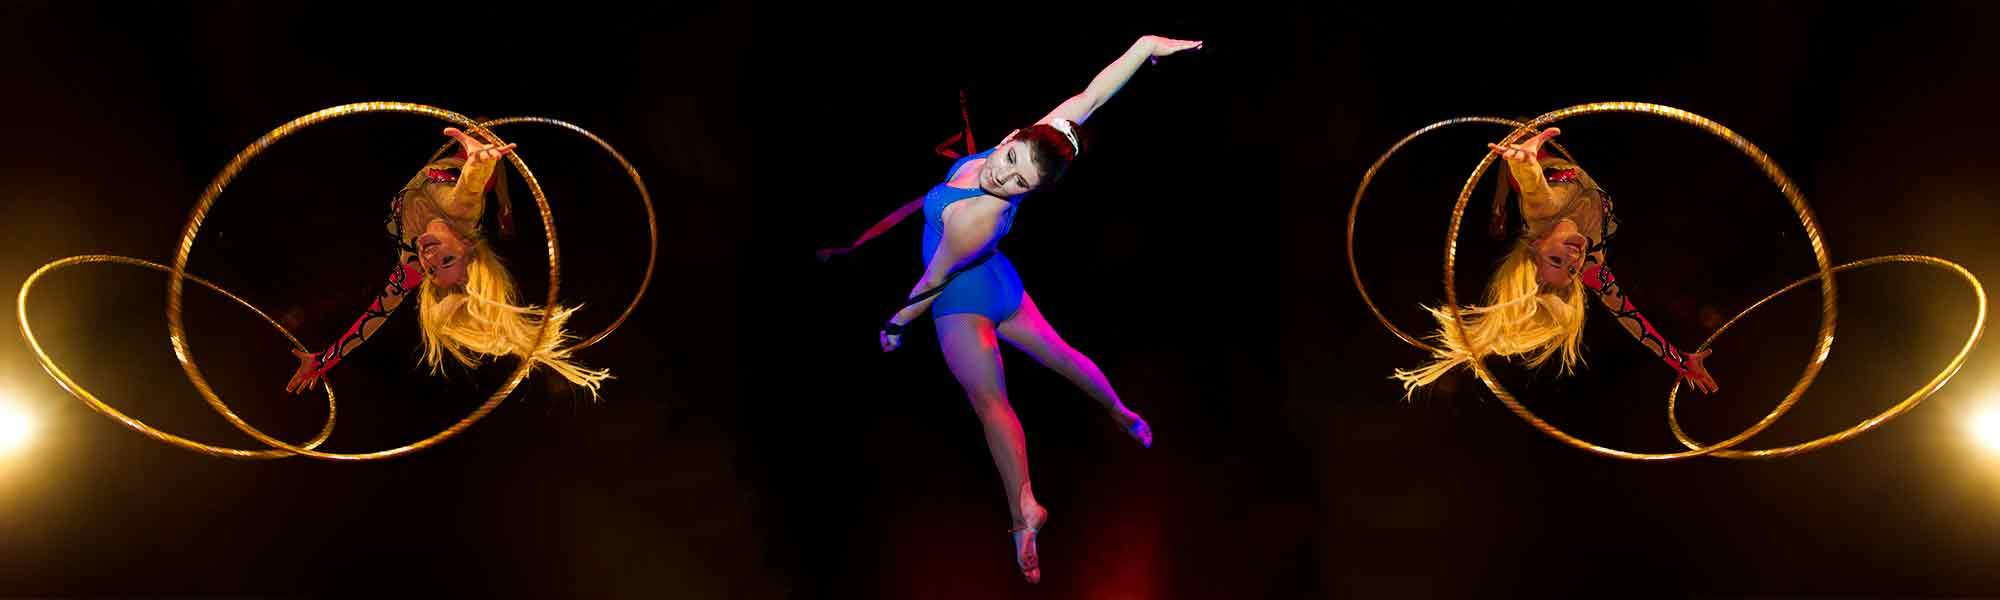 Little Bird 50% off Circus Berlin, Tunbridge Wells - See Performers From All Over The World!